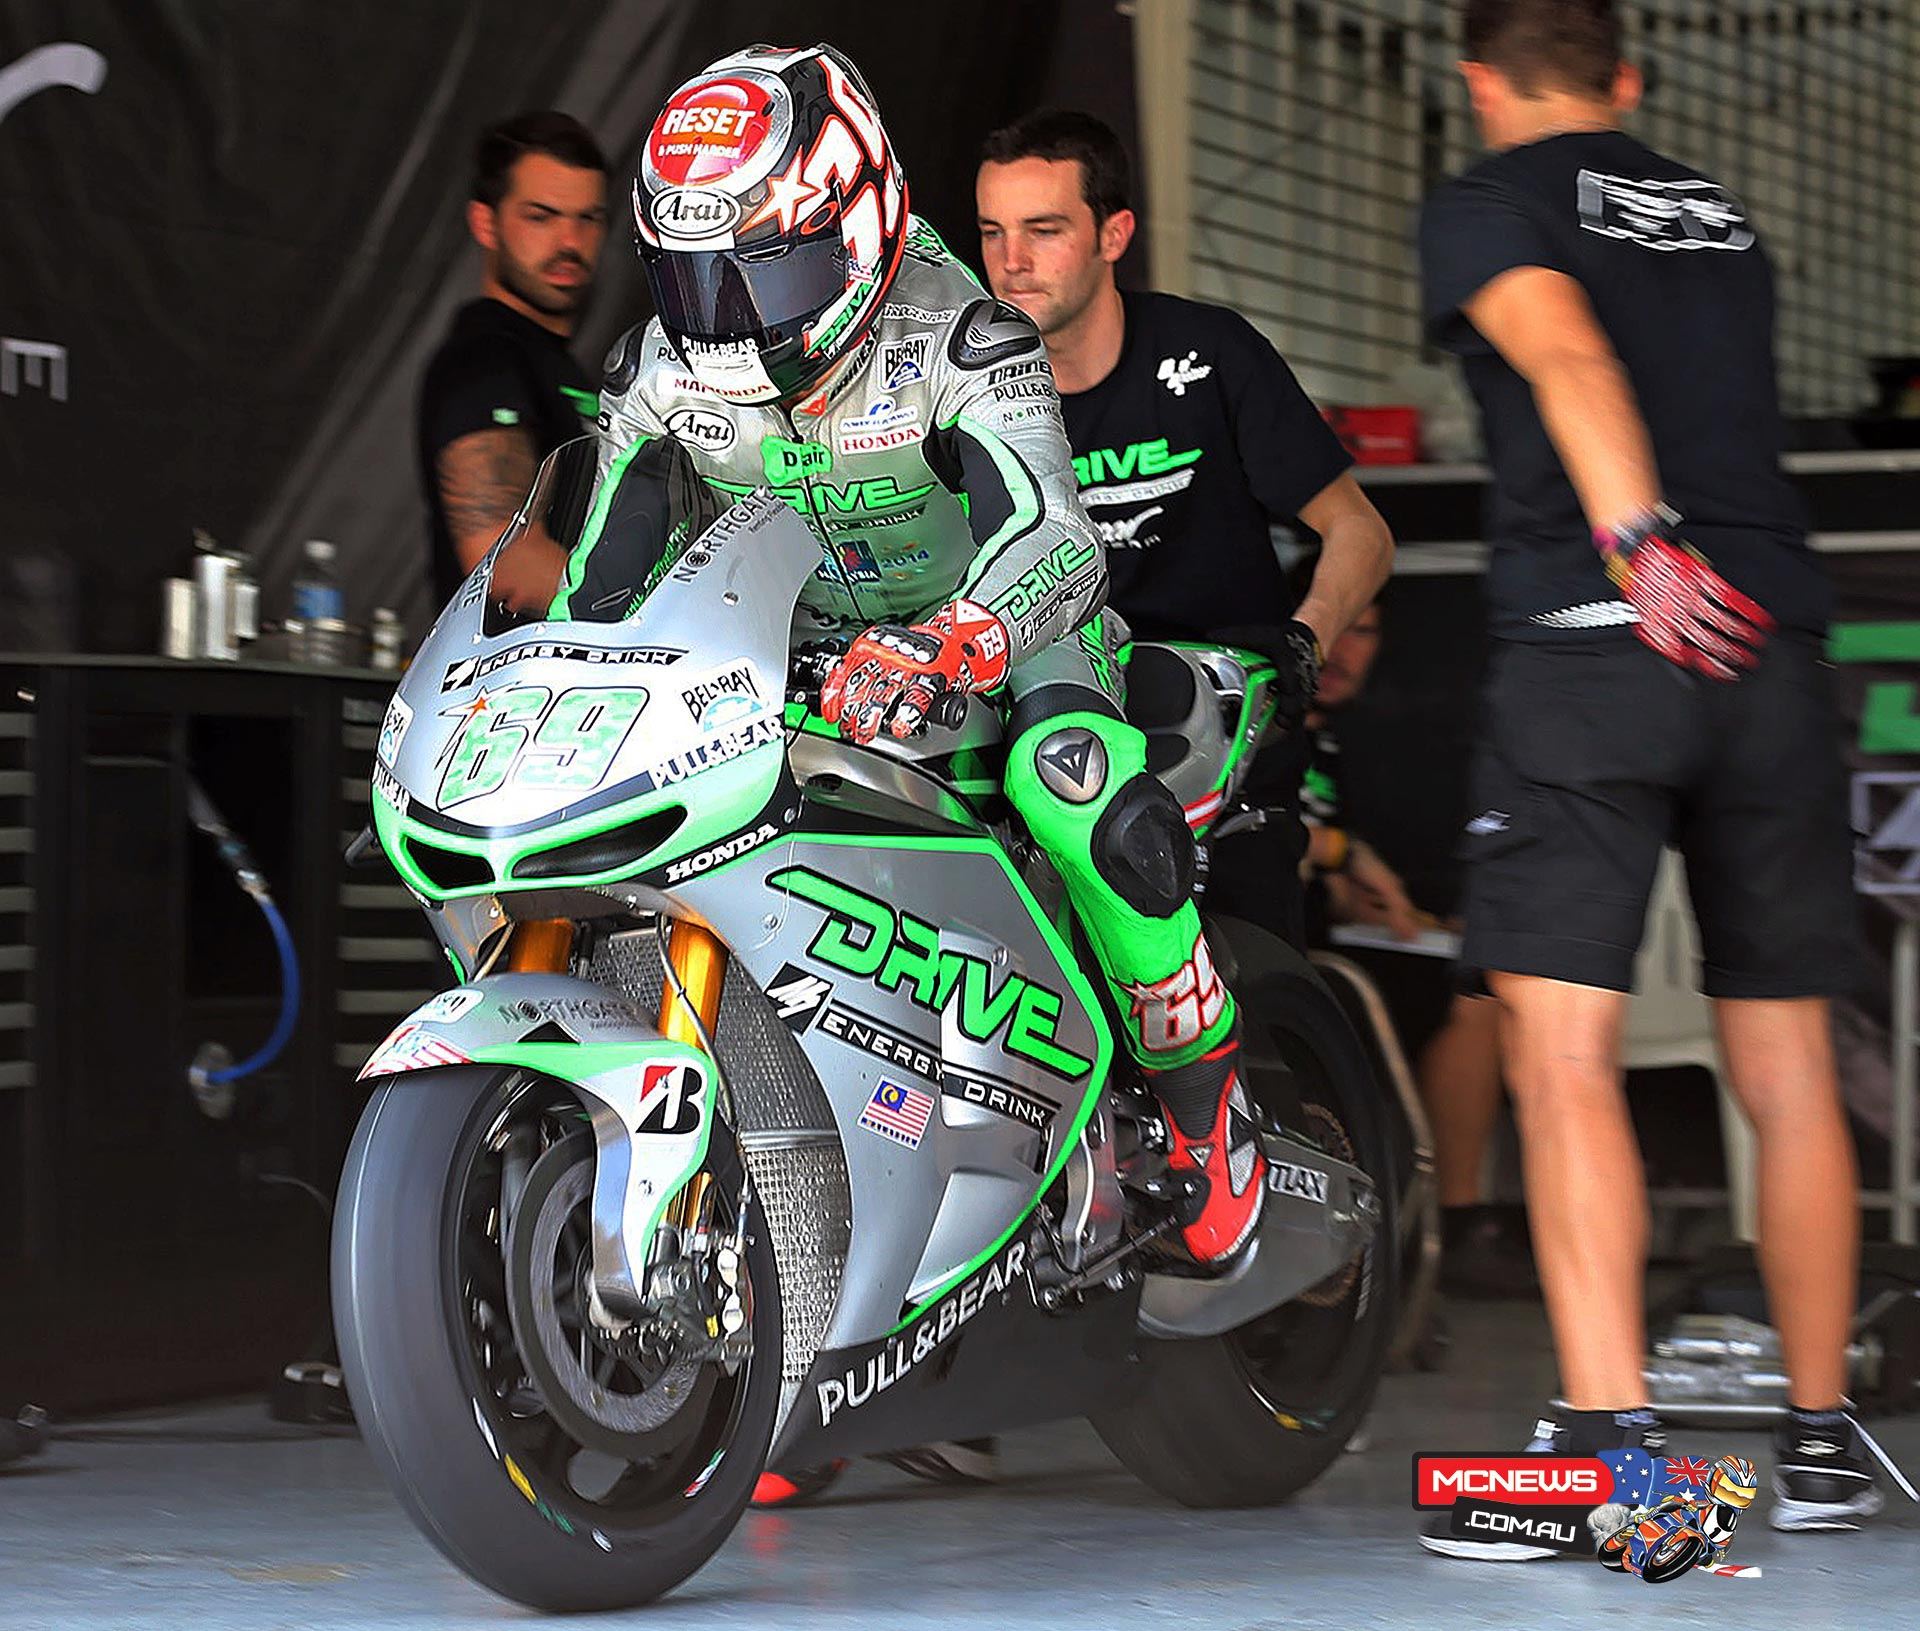 """Nicky Hayden (Drive M7 Aspar Honda): 15th, 2m 01.924s - """"We have worked really hard over the last three days here and we have gathered a lot of information that has given us a better understanding of the bike, although we still haven't made the major step we are looking for. We still don't know why we're struggling so much to get the bike stopped into the corners so we need to work more with the electronics. It has been a strange day and we lost some time making alterations to the set-up to adapt to the heat. We know our potential is much higher than we have been able to show here so we can be optimistic and go to Qatar next week ready to put some more hard work in. It will be interesting to see how the bike performs at a different track but we have a lot to do there to make sure we are ready for the first race."""""""